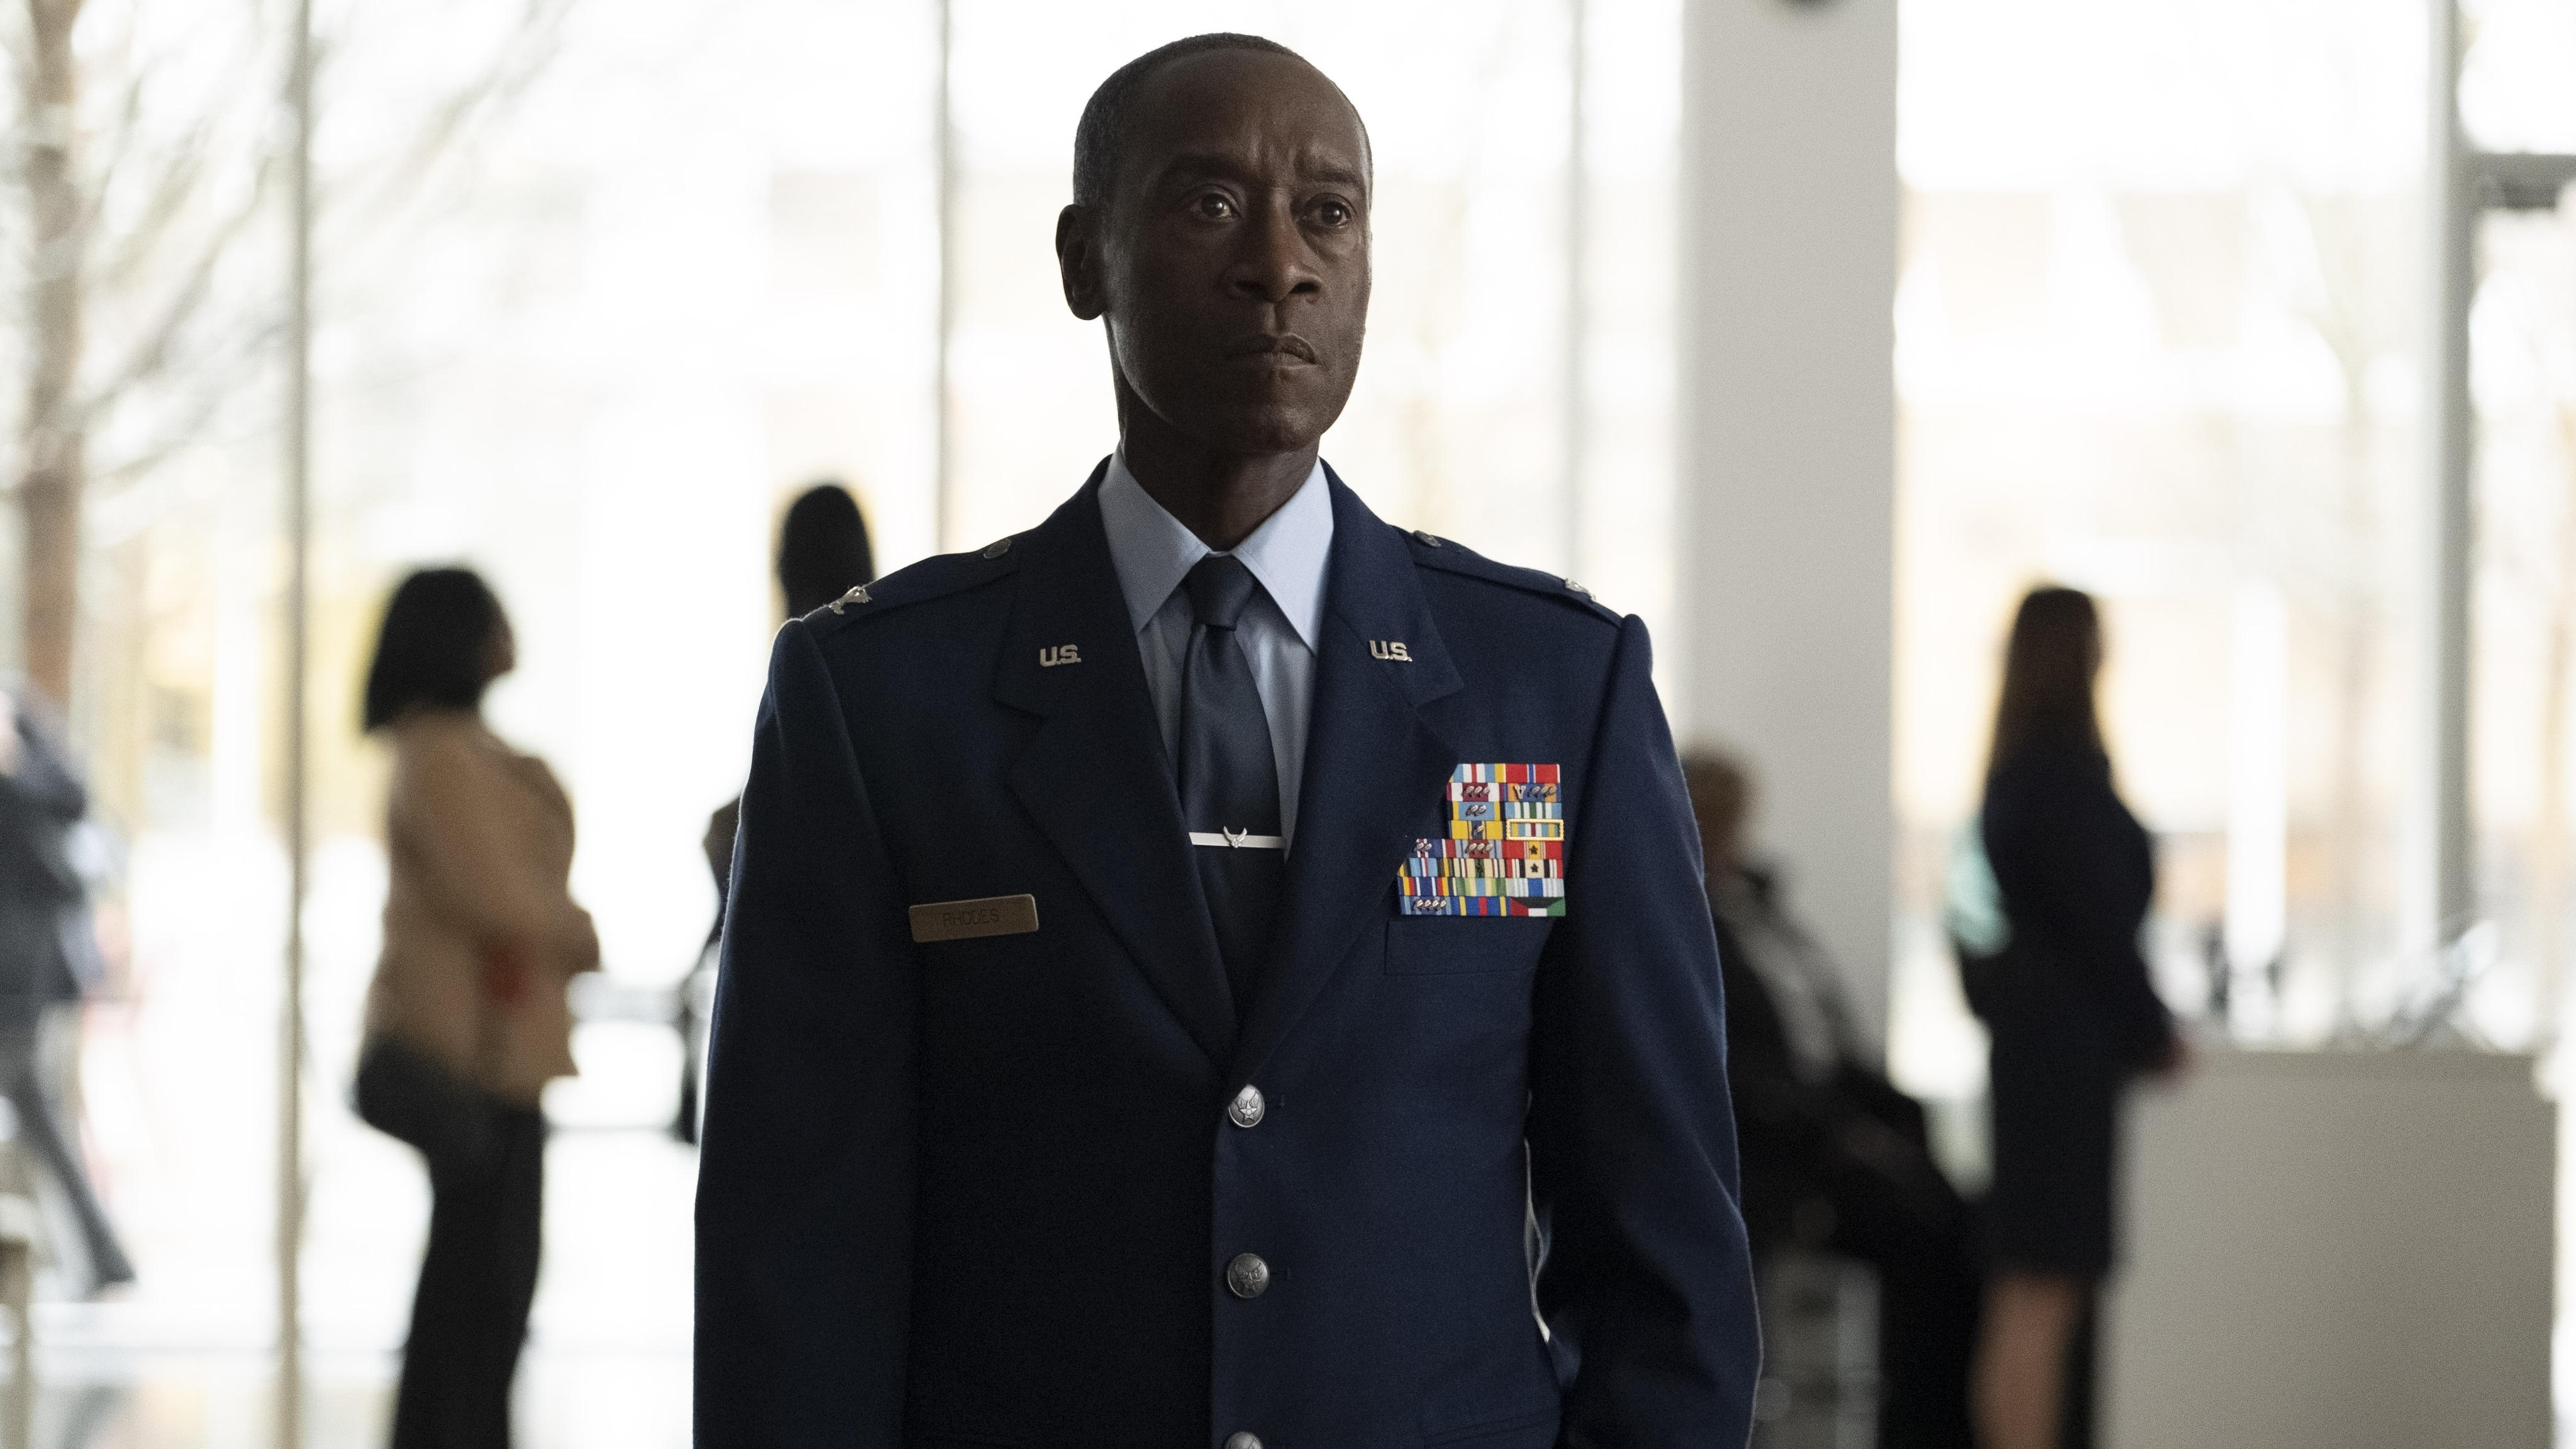 Rhodey (Don Cheadle) in Marvel Studios' THE FALCON AND THE WINTER SOLDIER exclusively on Disney+. Photo by Chuck Zlotnick. ©Marvel Studios 2021. All Rights Reserved